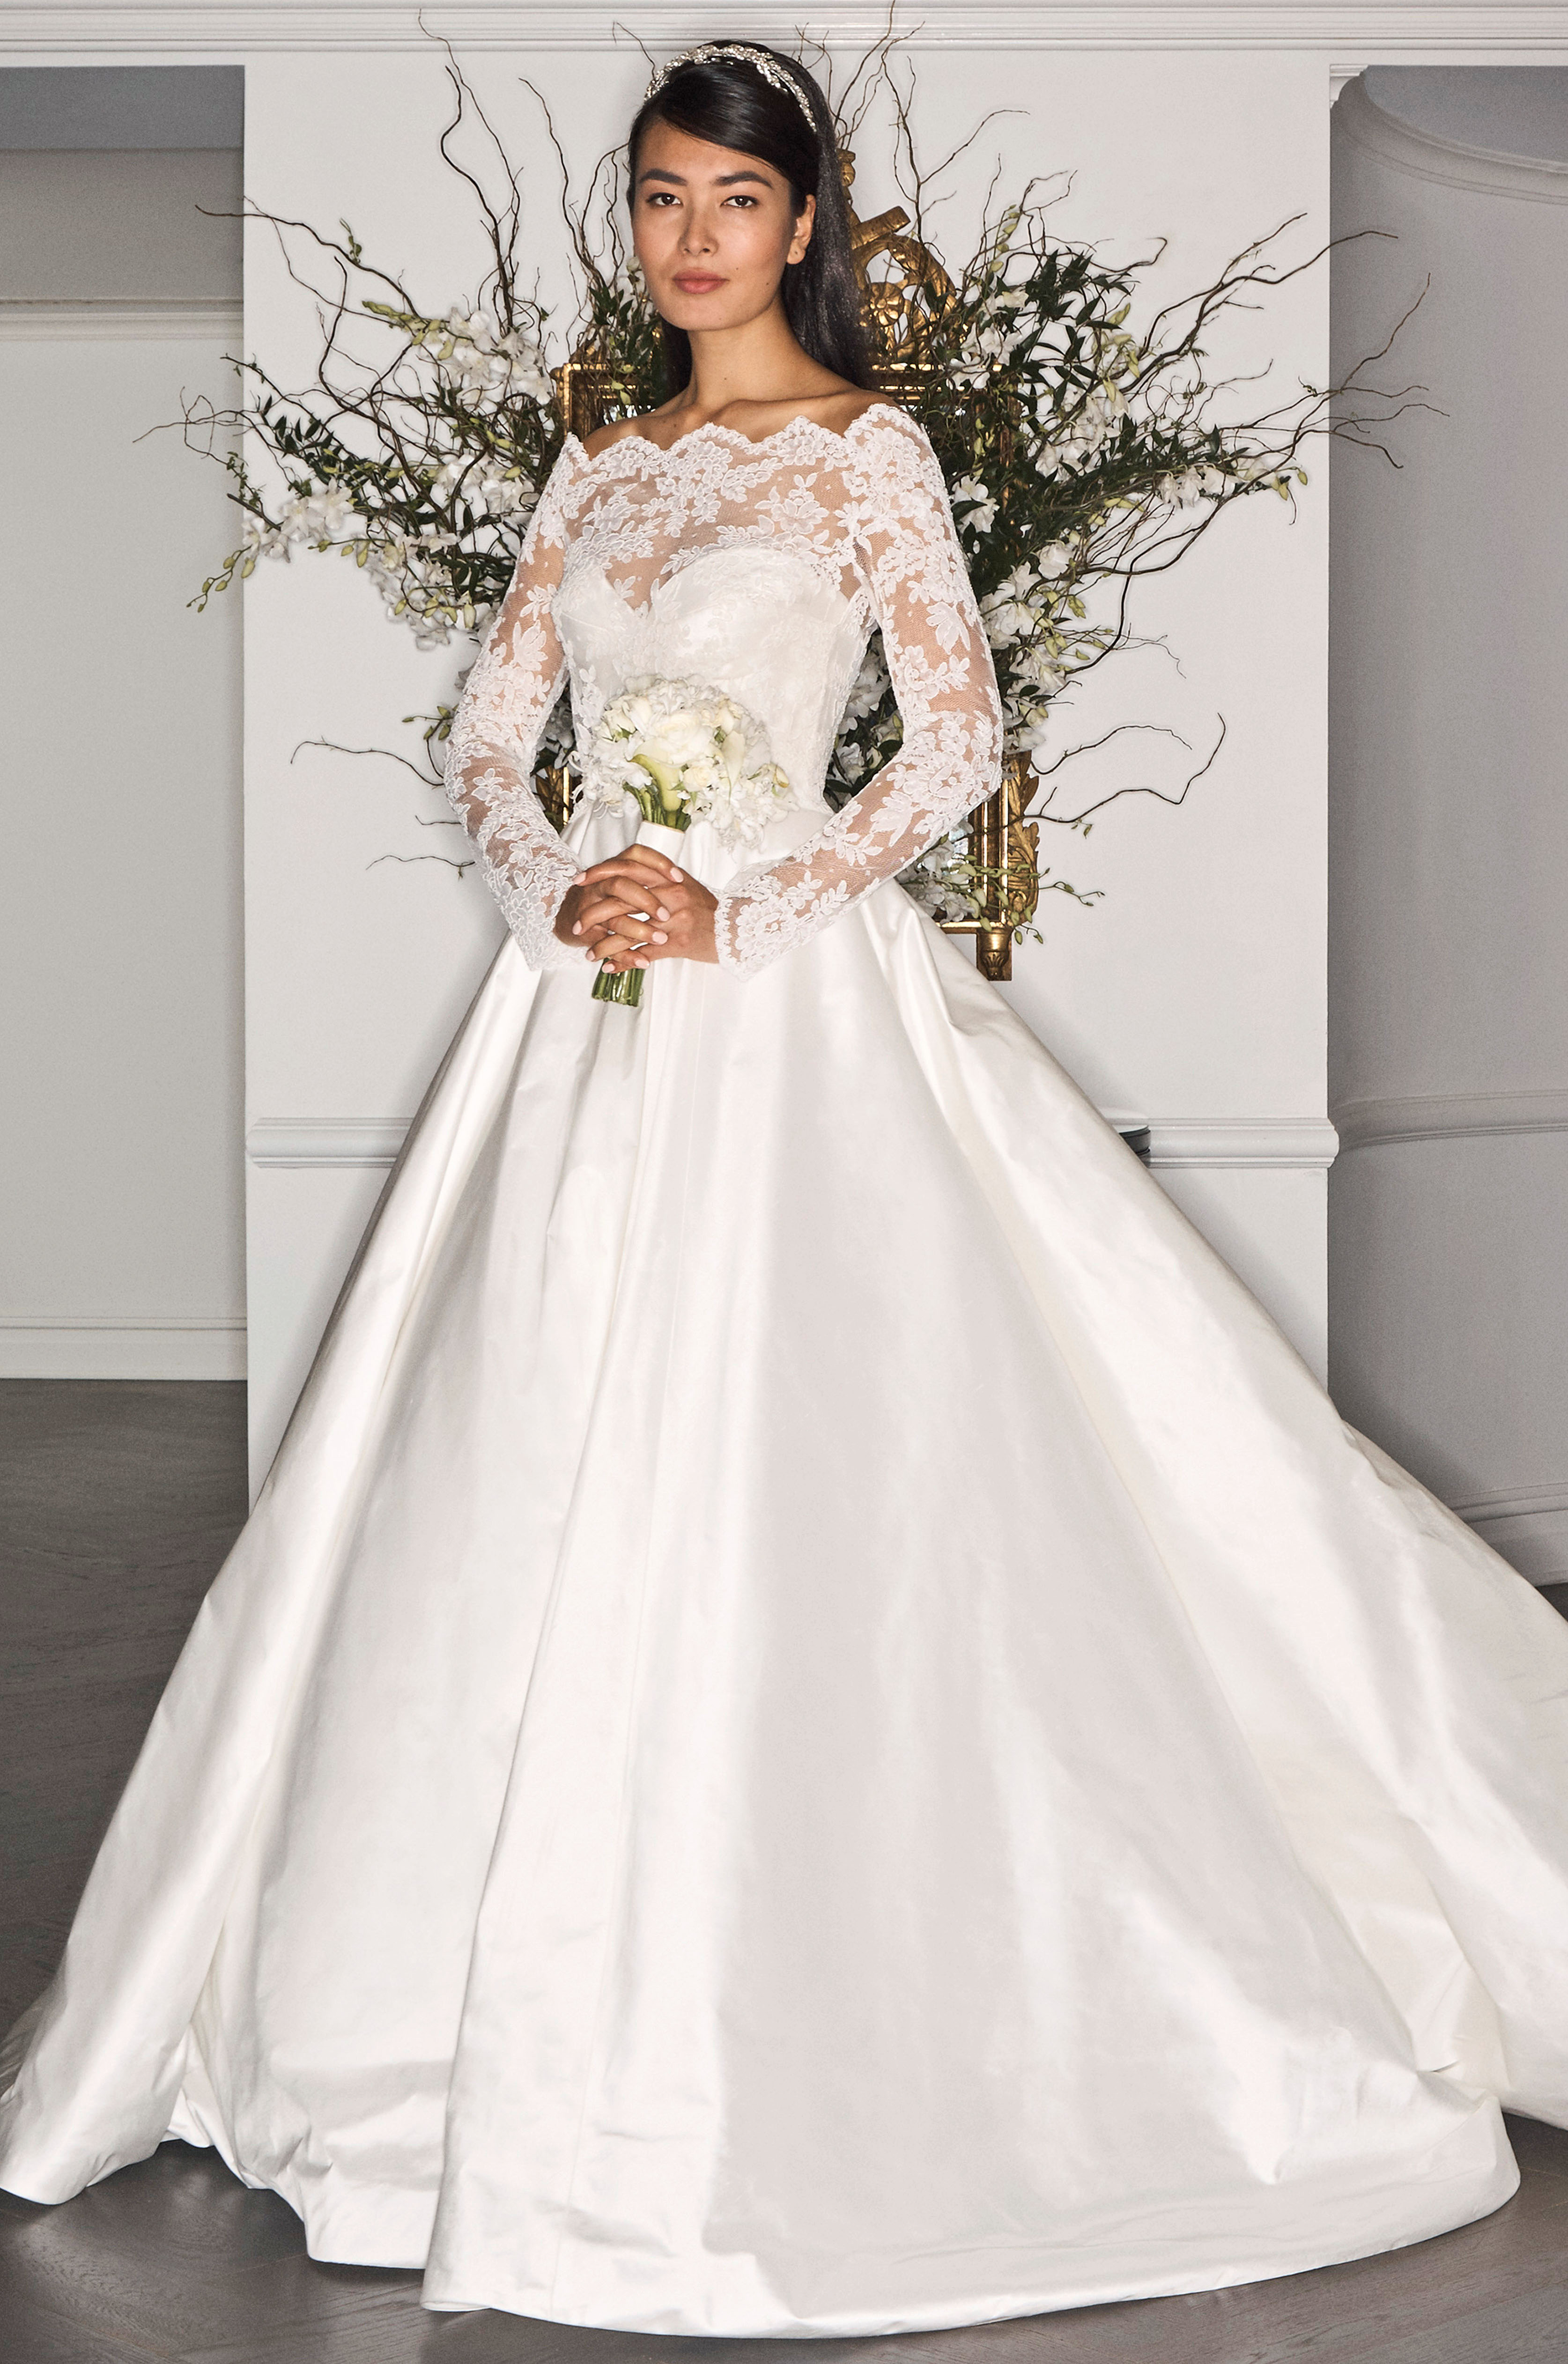 Legends by Romona Keveza Fall 2017 Wedding Dress Collection